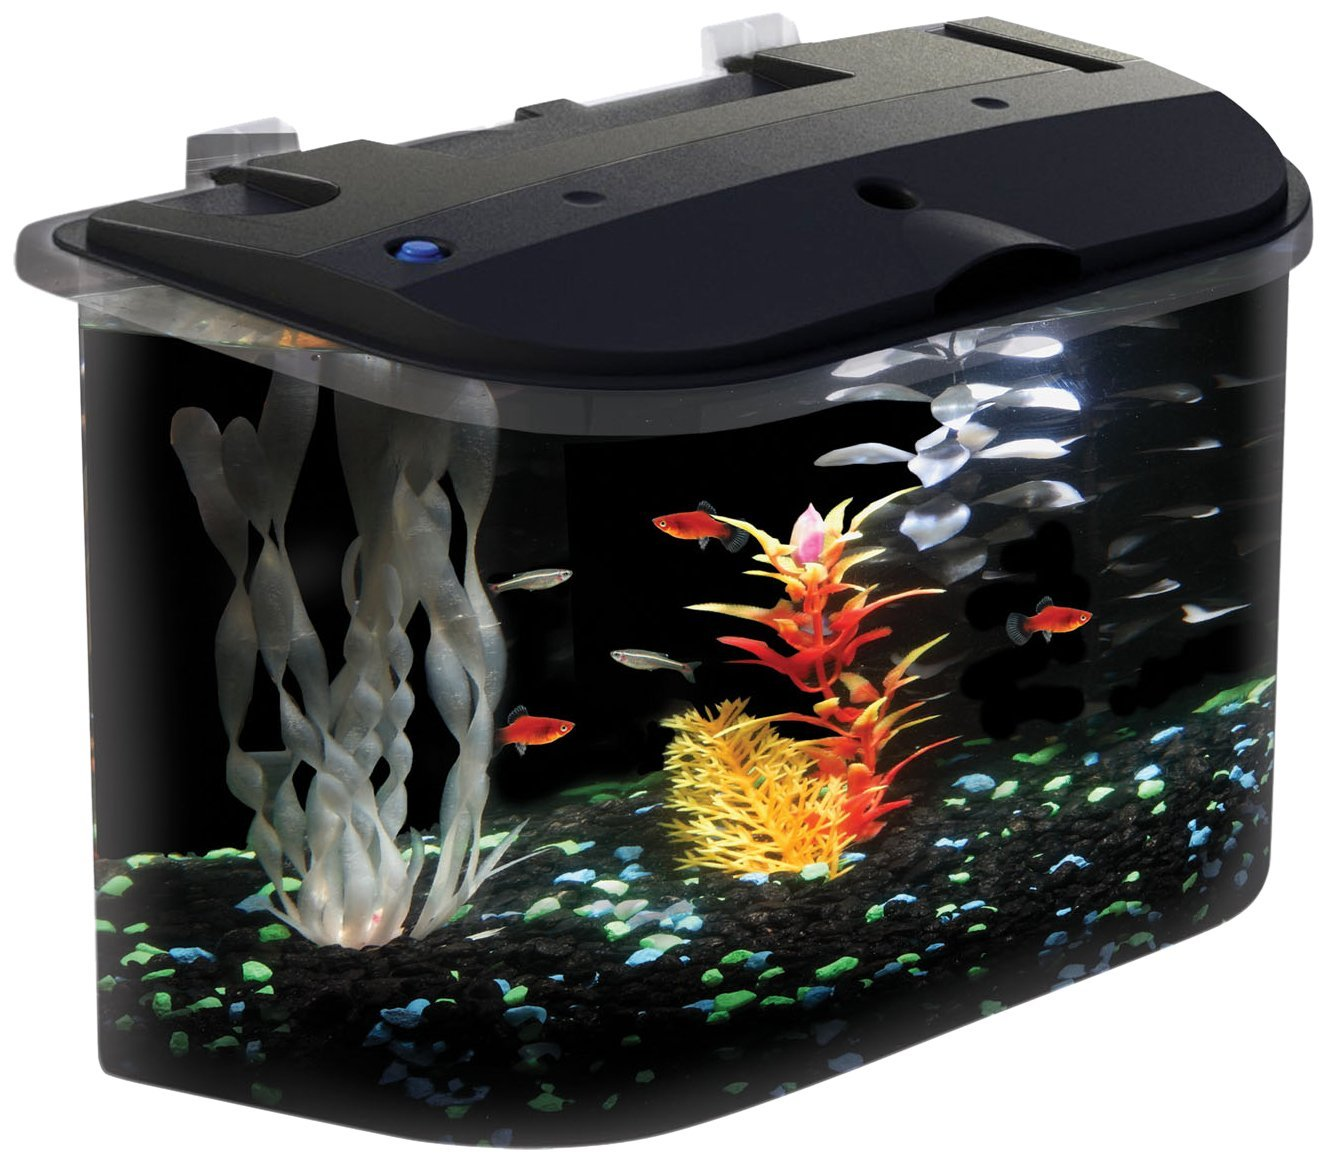 aquarius aq15005 aquarius 5 rounded 5 gallon aquarium kit